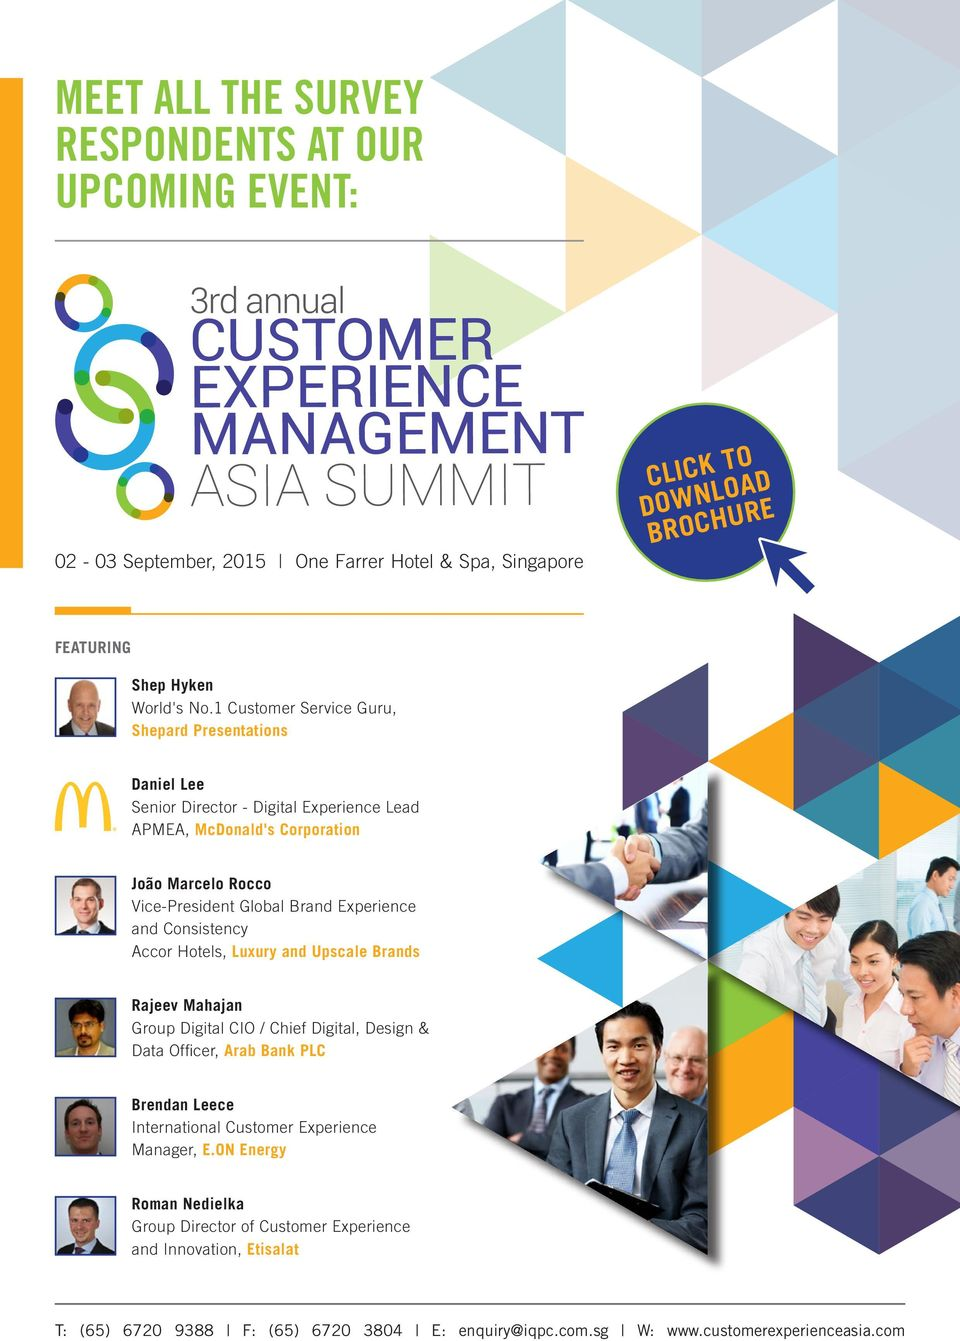 1 Customer Service Guru, Shepard Presentations Daniel Lee Senior Director - Digital Experience Lead APMEA, McDonald's Corporation João Marcelo Rocco